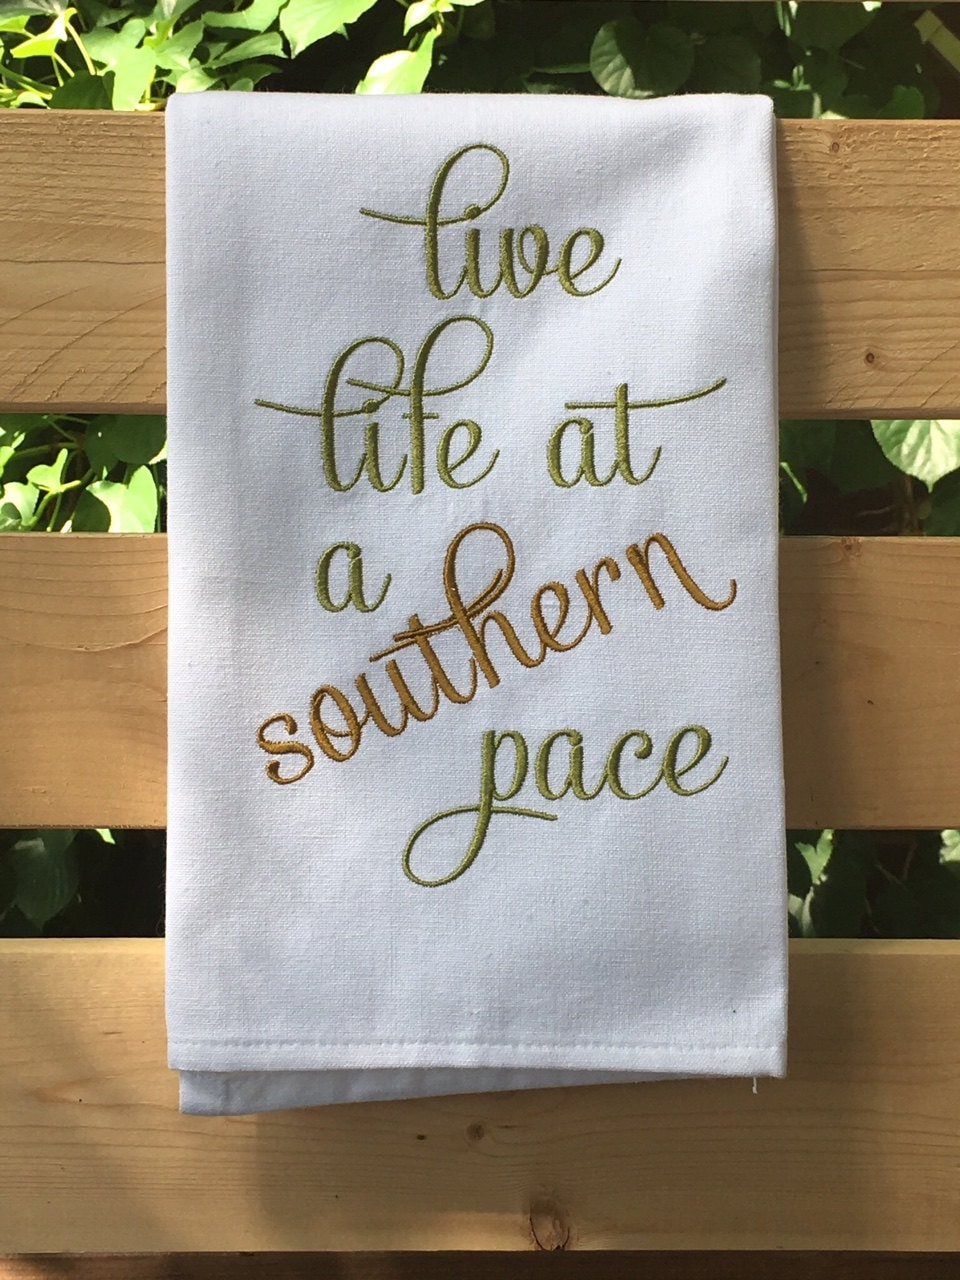 southern live life at a southern pace kitchen dish towel